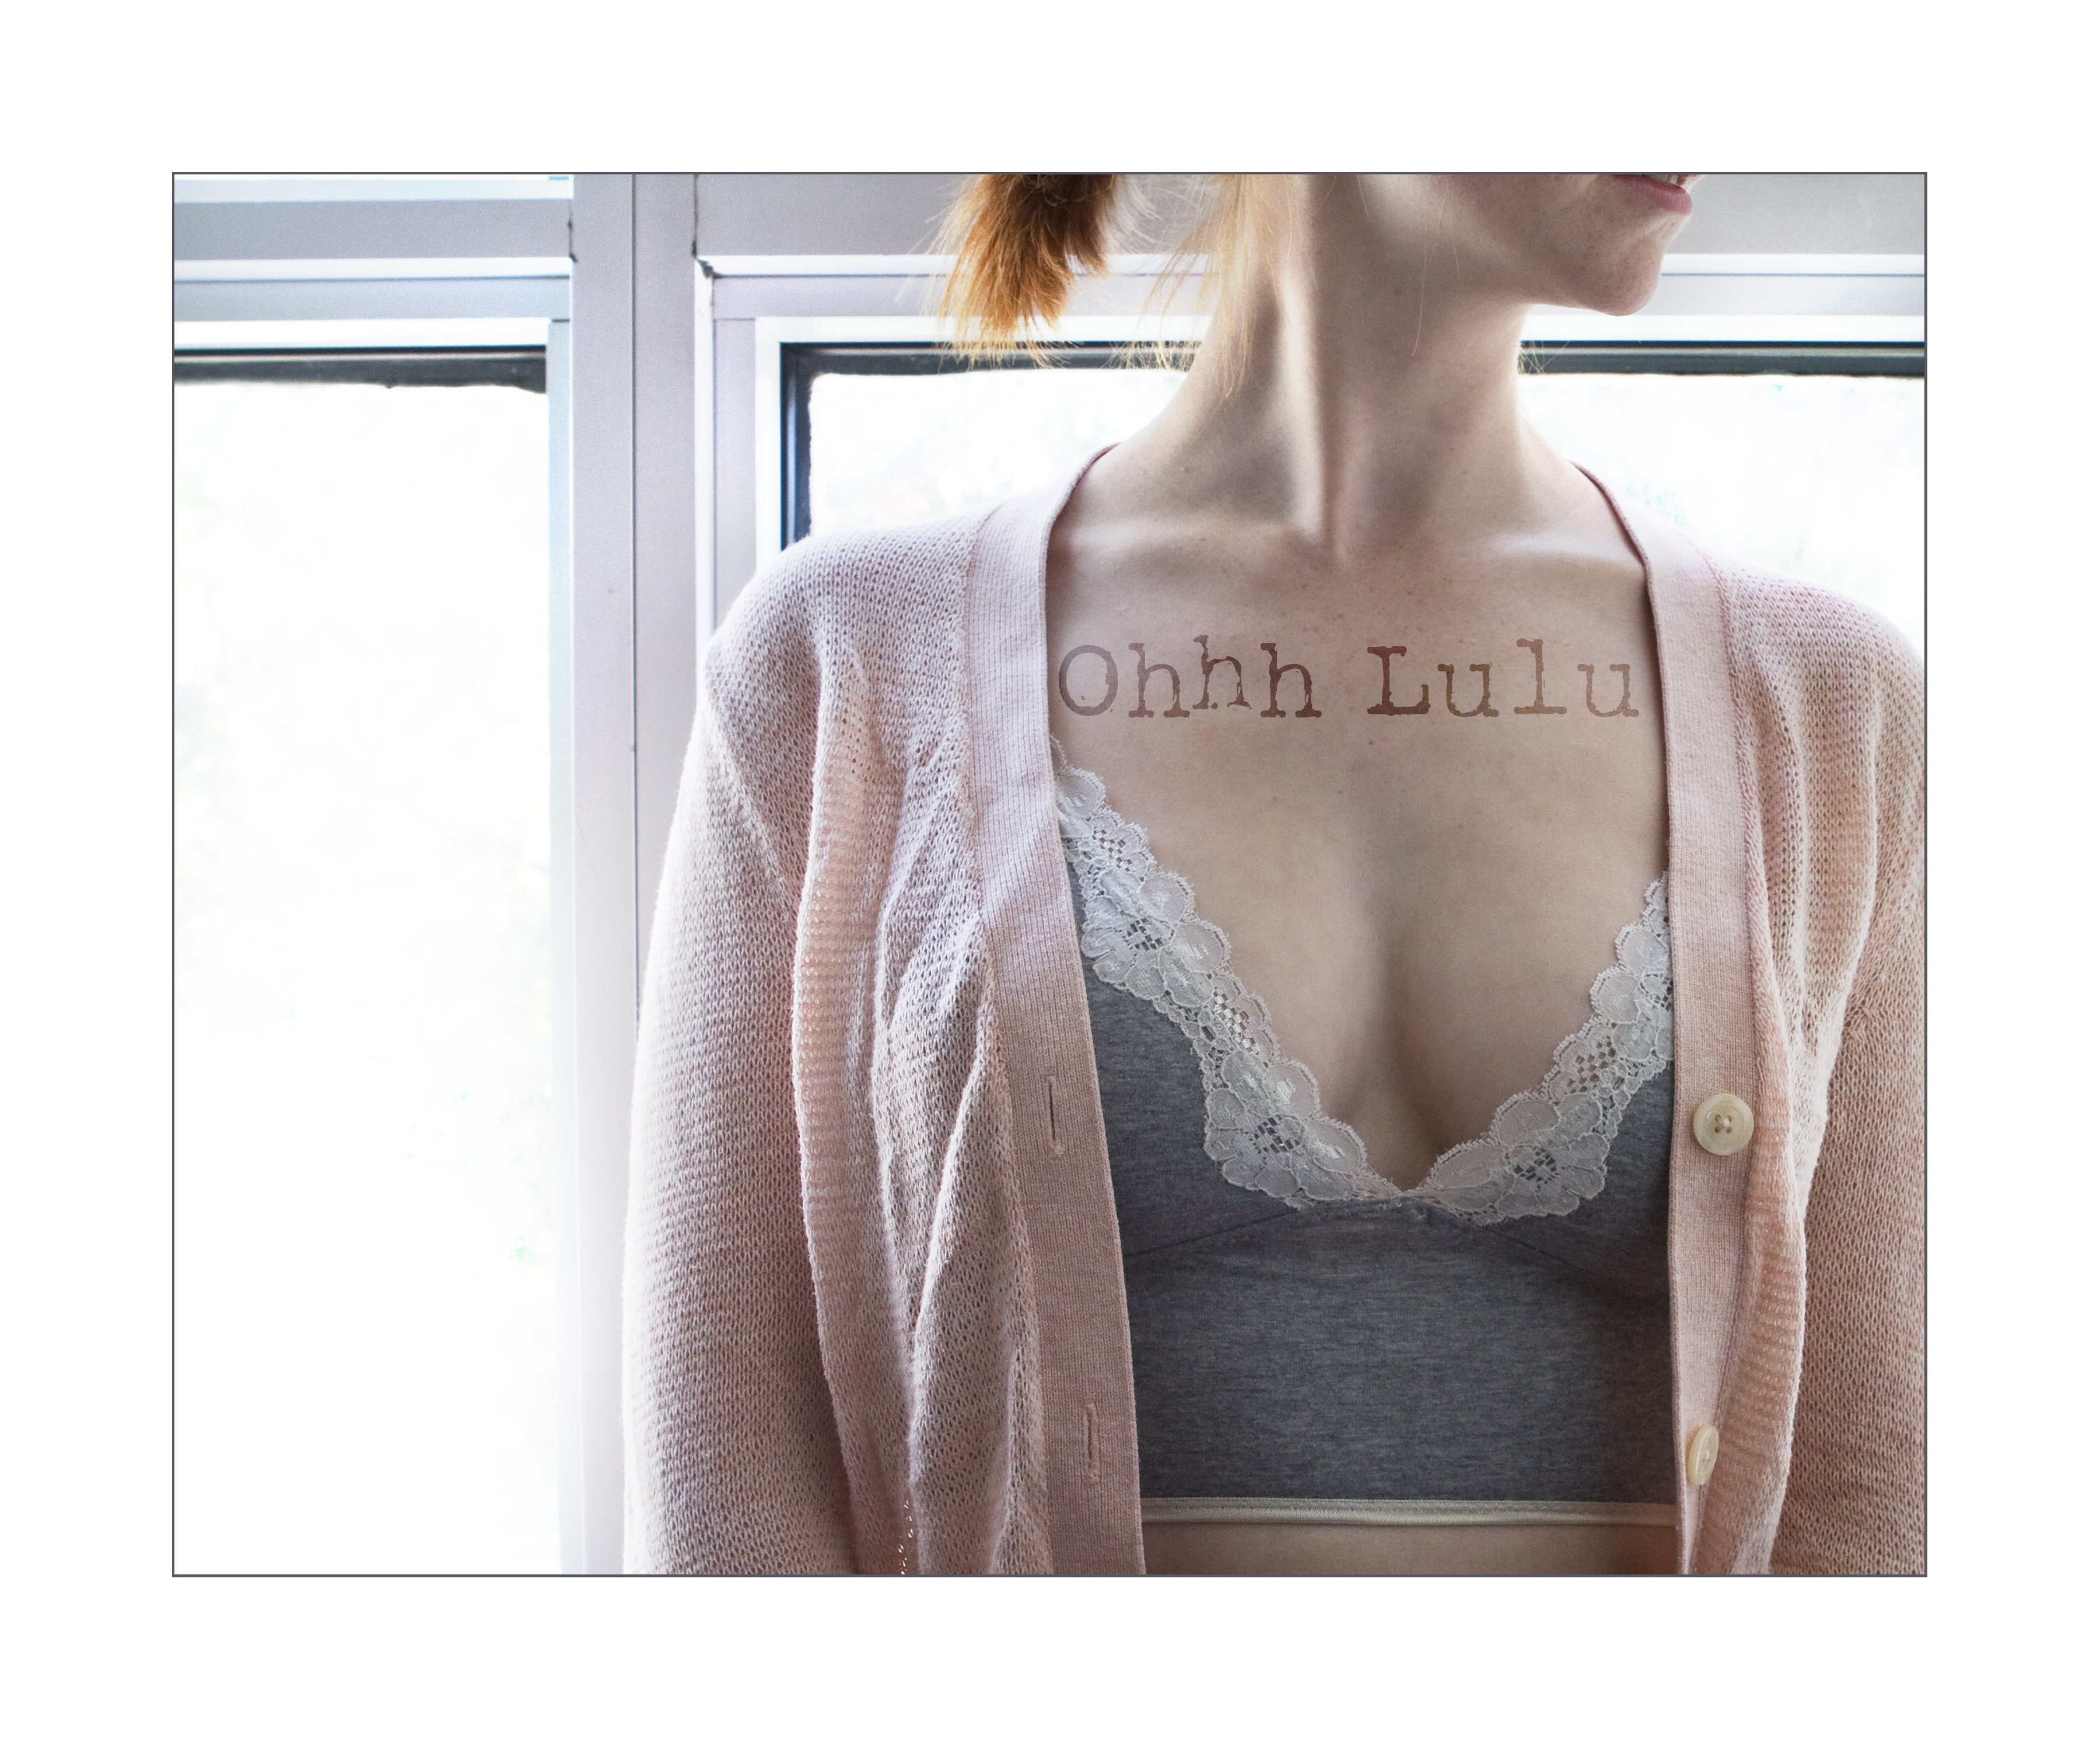 9c5c9fe7aec Ohhh Lulu Custom Bralette in Heather Grey with White Lace Detail